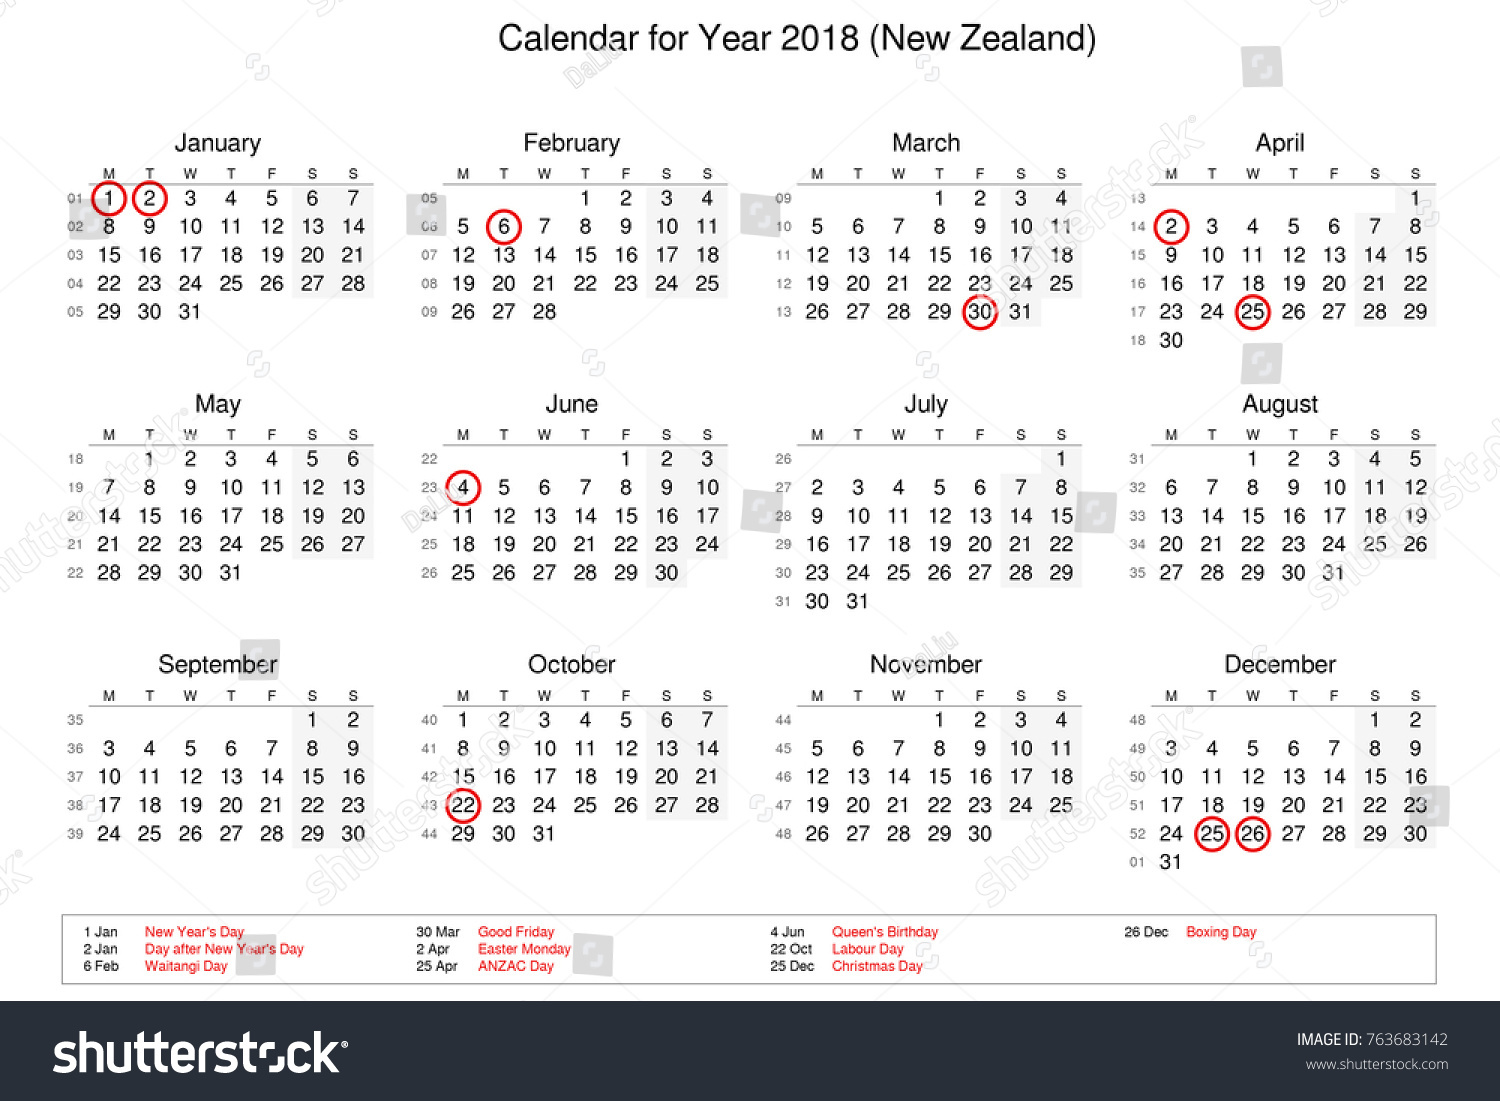 calendar of year 2018 with public holidays and bank holidays for new zealand